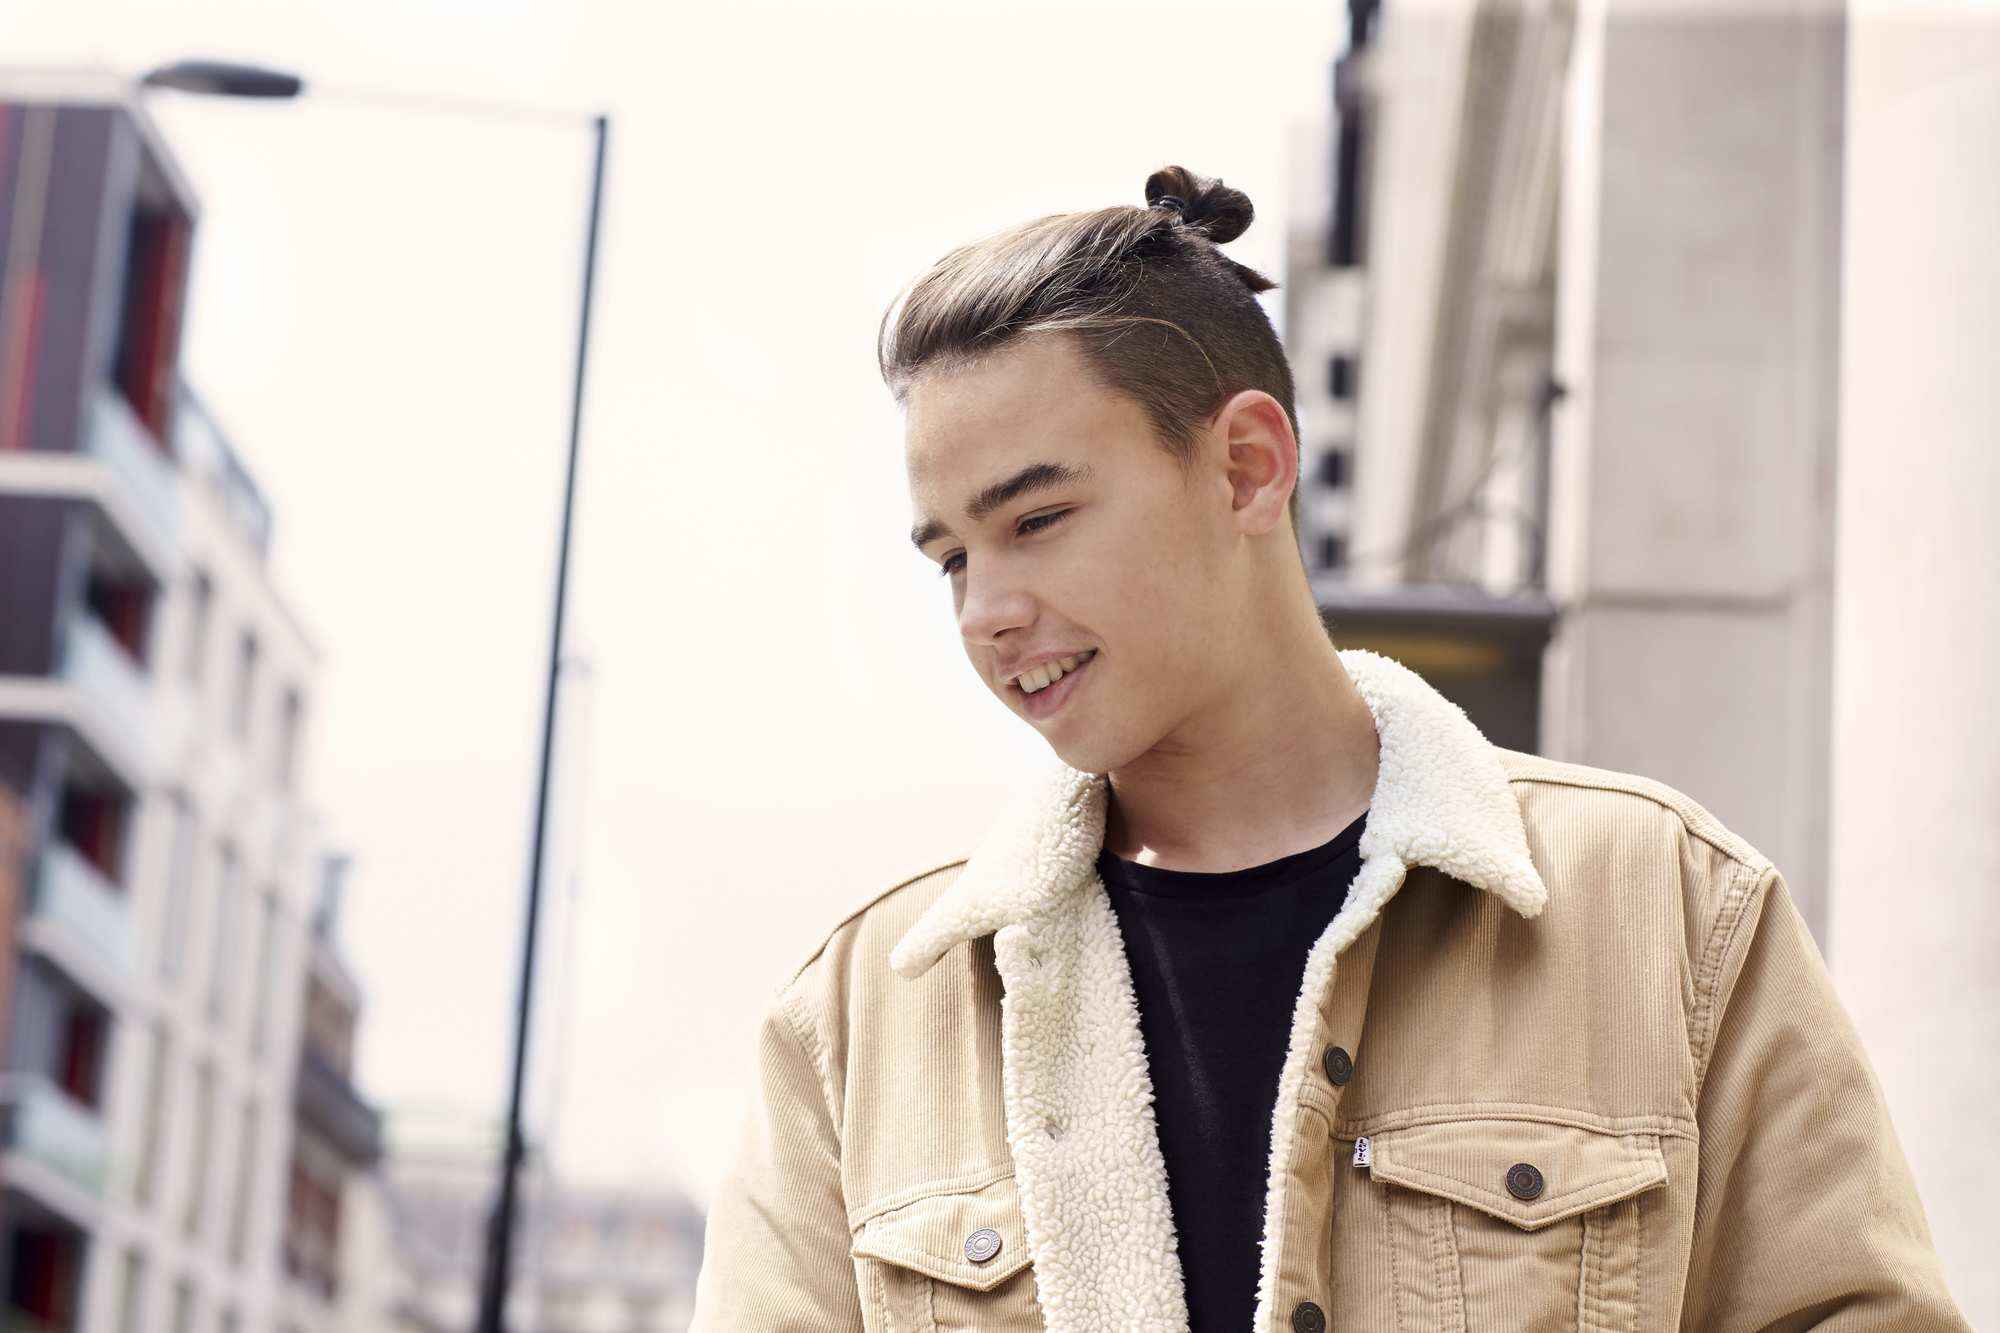 male model with black hair with man bun and high undercut fade